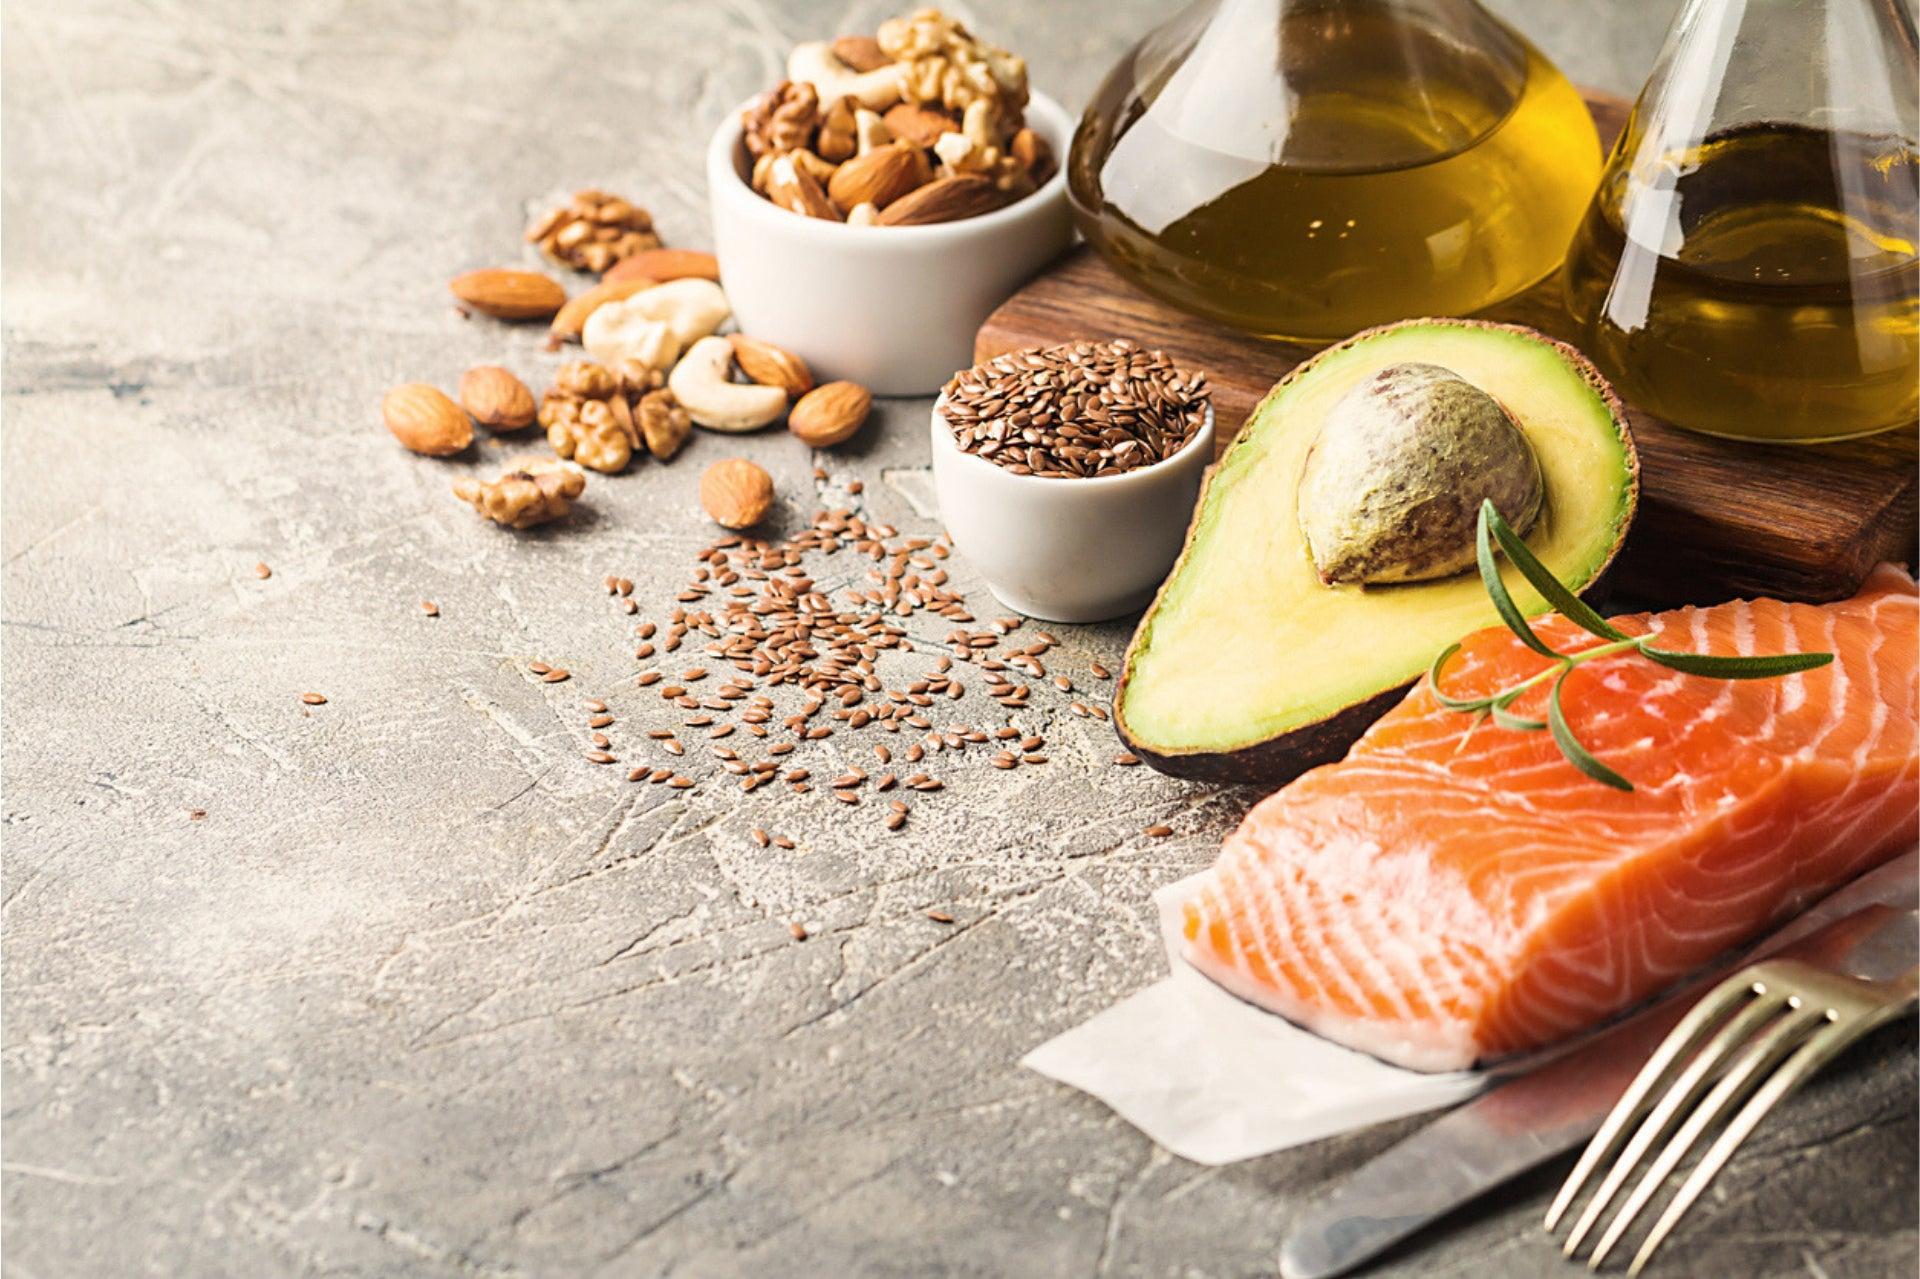 Omega-3 - Are we really getting enough?